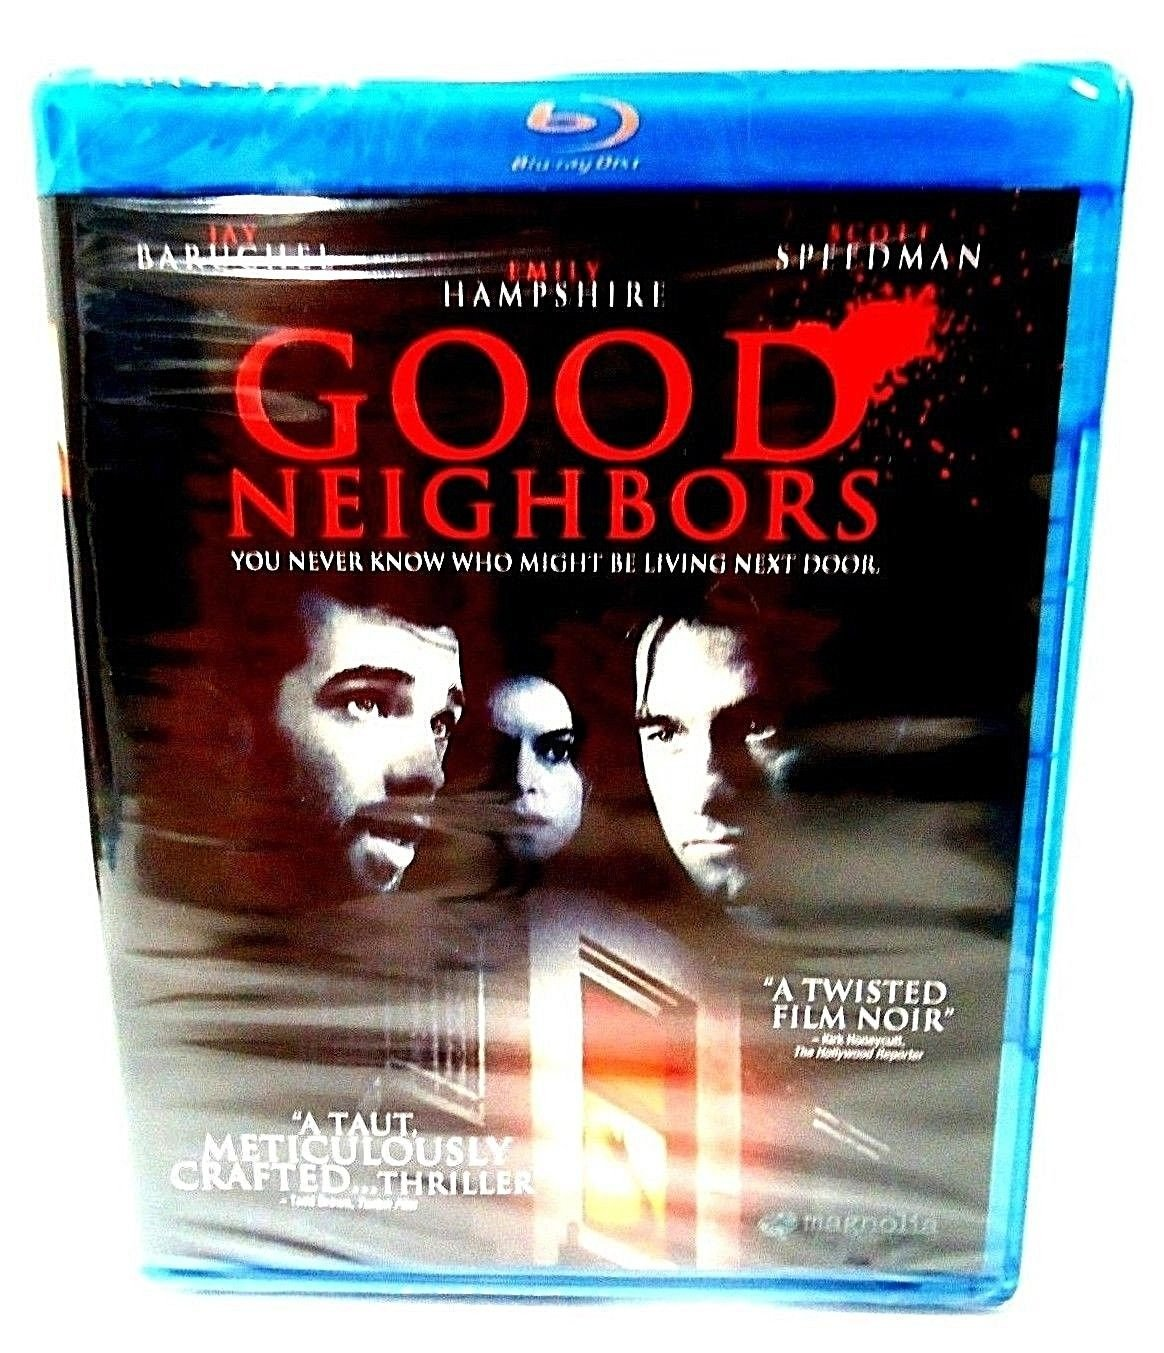 GOOD NEIGHBORS - BLU-RAY - DVD - SCOTT SPEEDMAN - NEW - CRIME - THRILLER - MOVIE